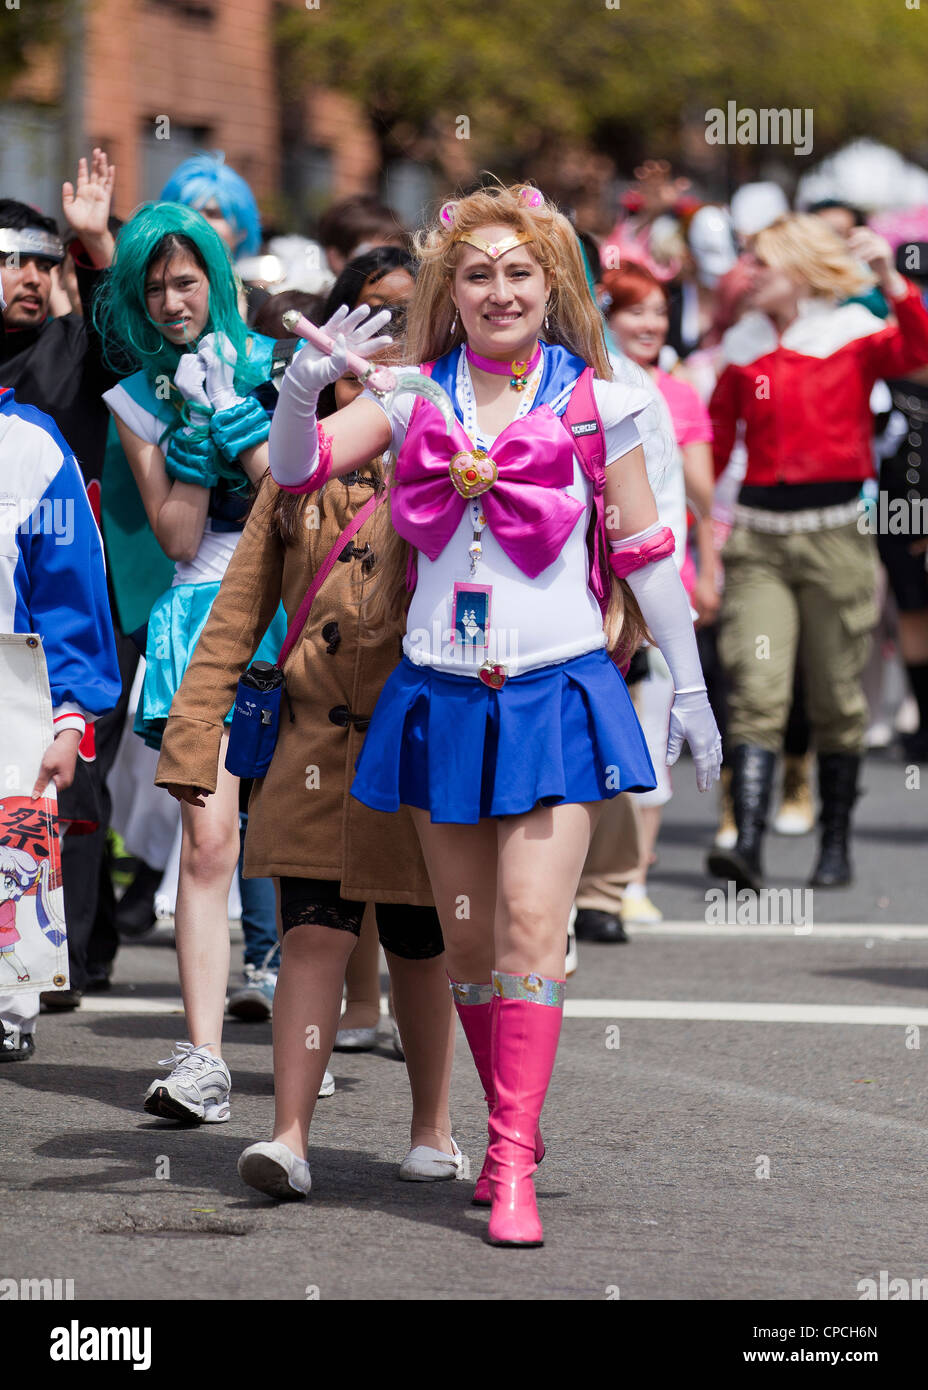 Caucasian woman dans Sailor Moon en costume cosplay - San Francisco, California USA Photo Stock